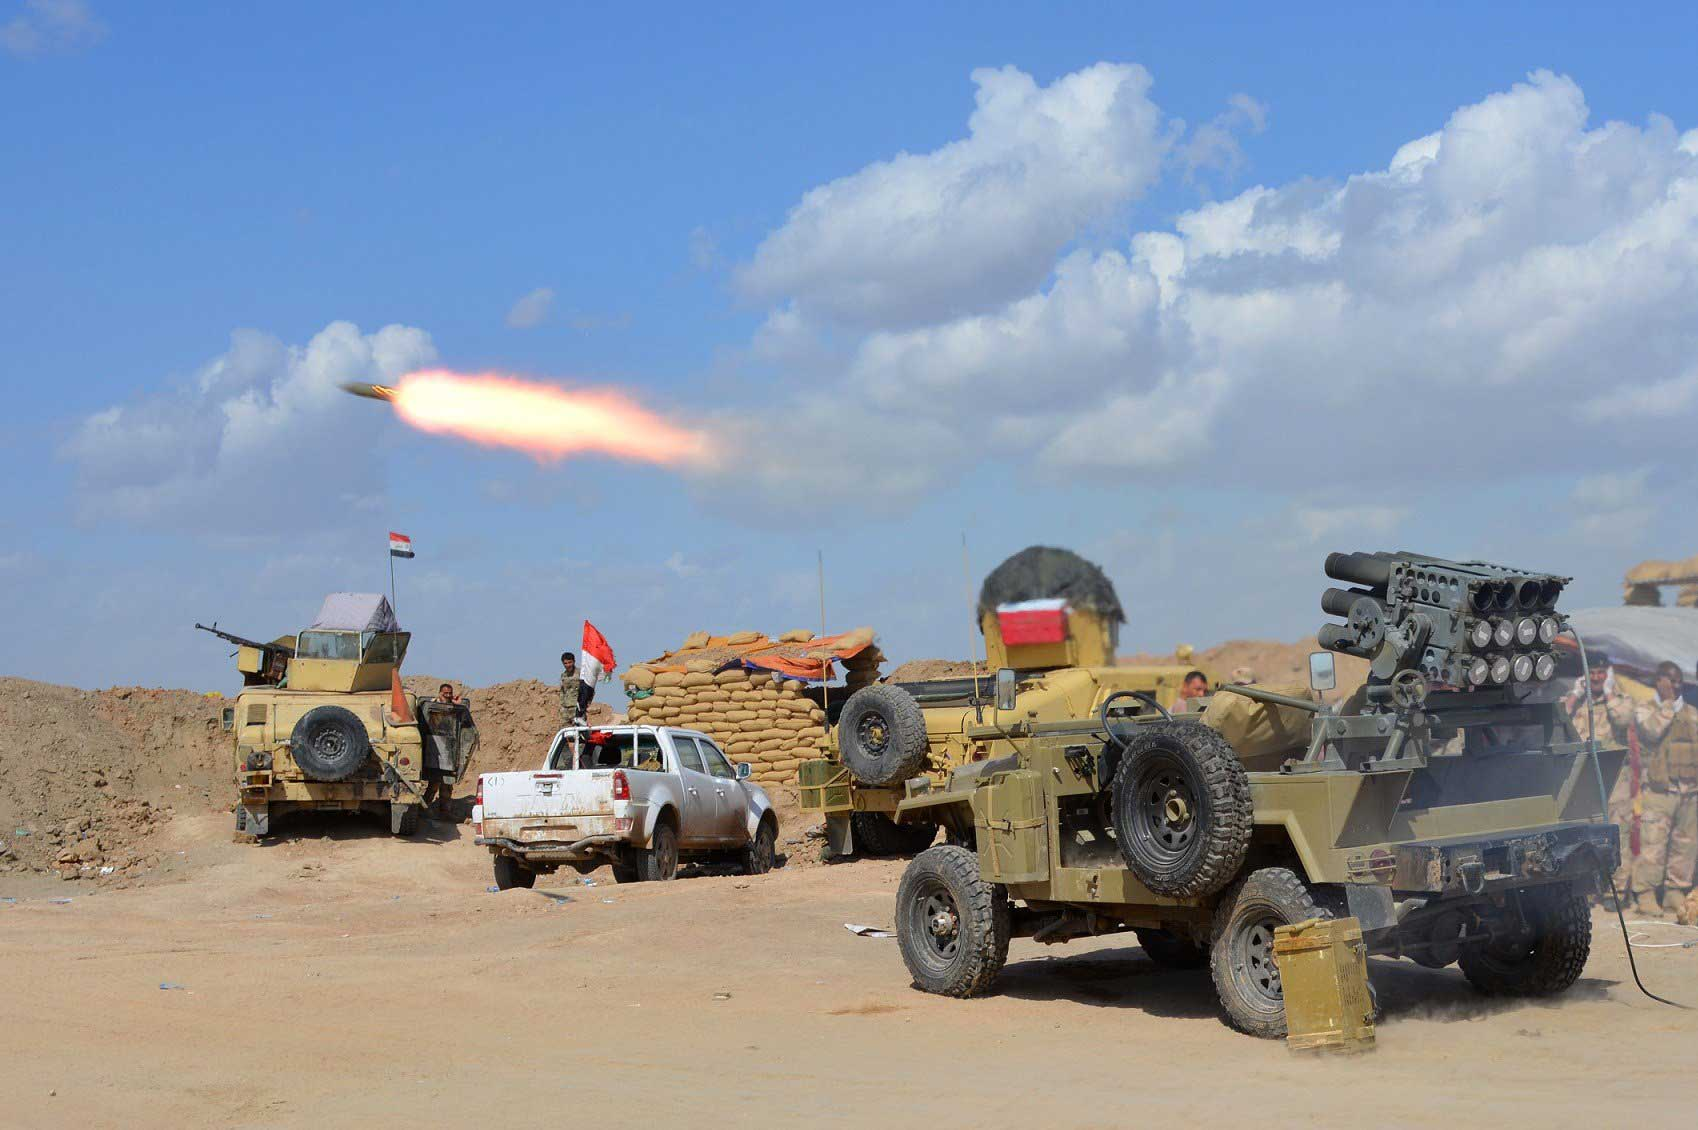 Iraqi government forces and allied militias fire weaponry from a position in the northern part of Diyala province, bordering Salaheddin province, as they take part in an assault to retake the city of Tikrit from ISIS militants, March 2, 2015.